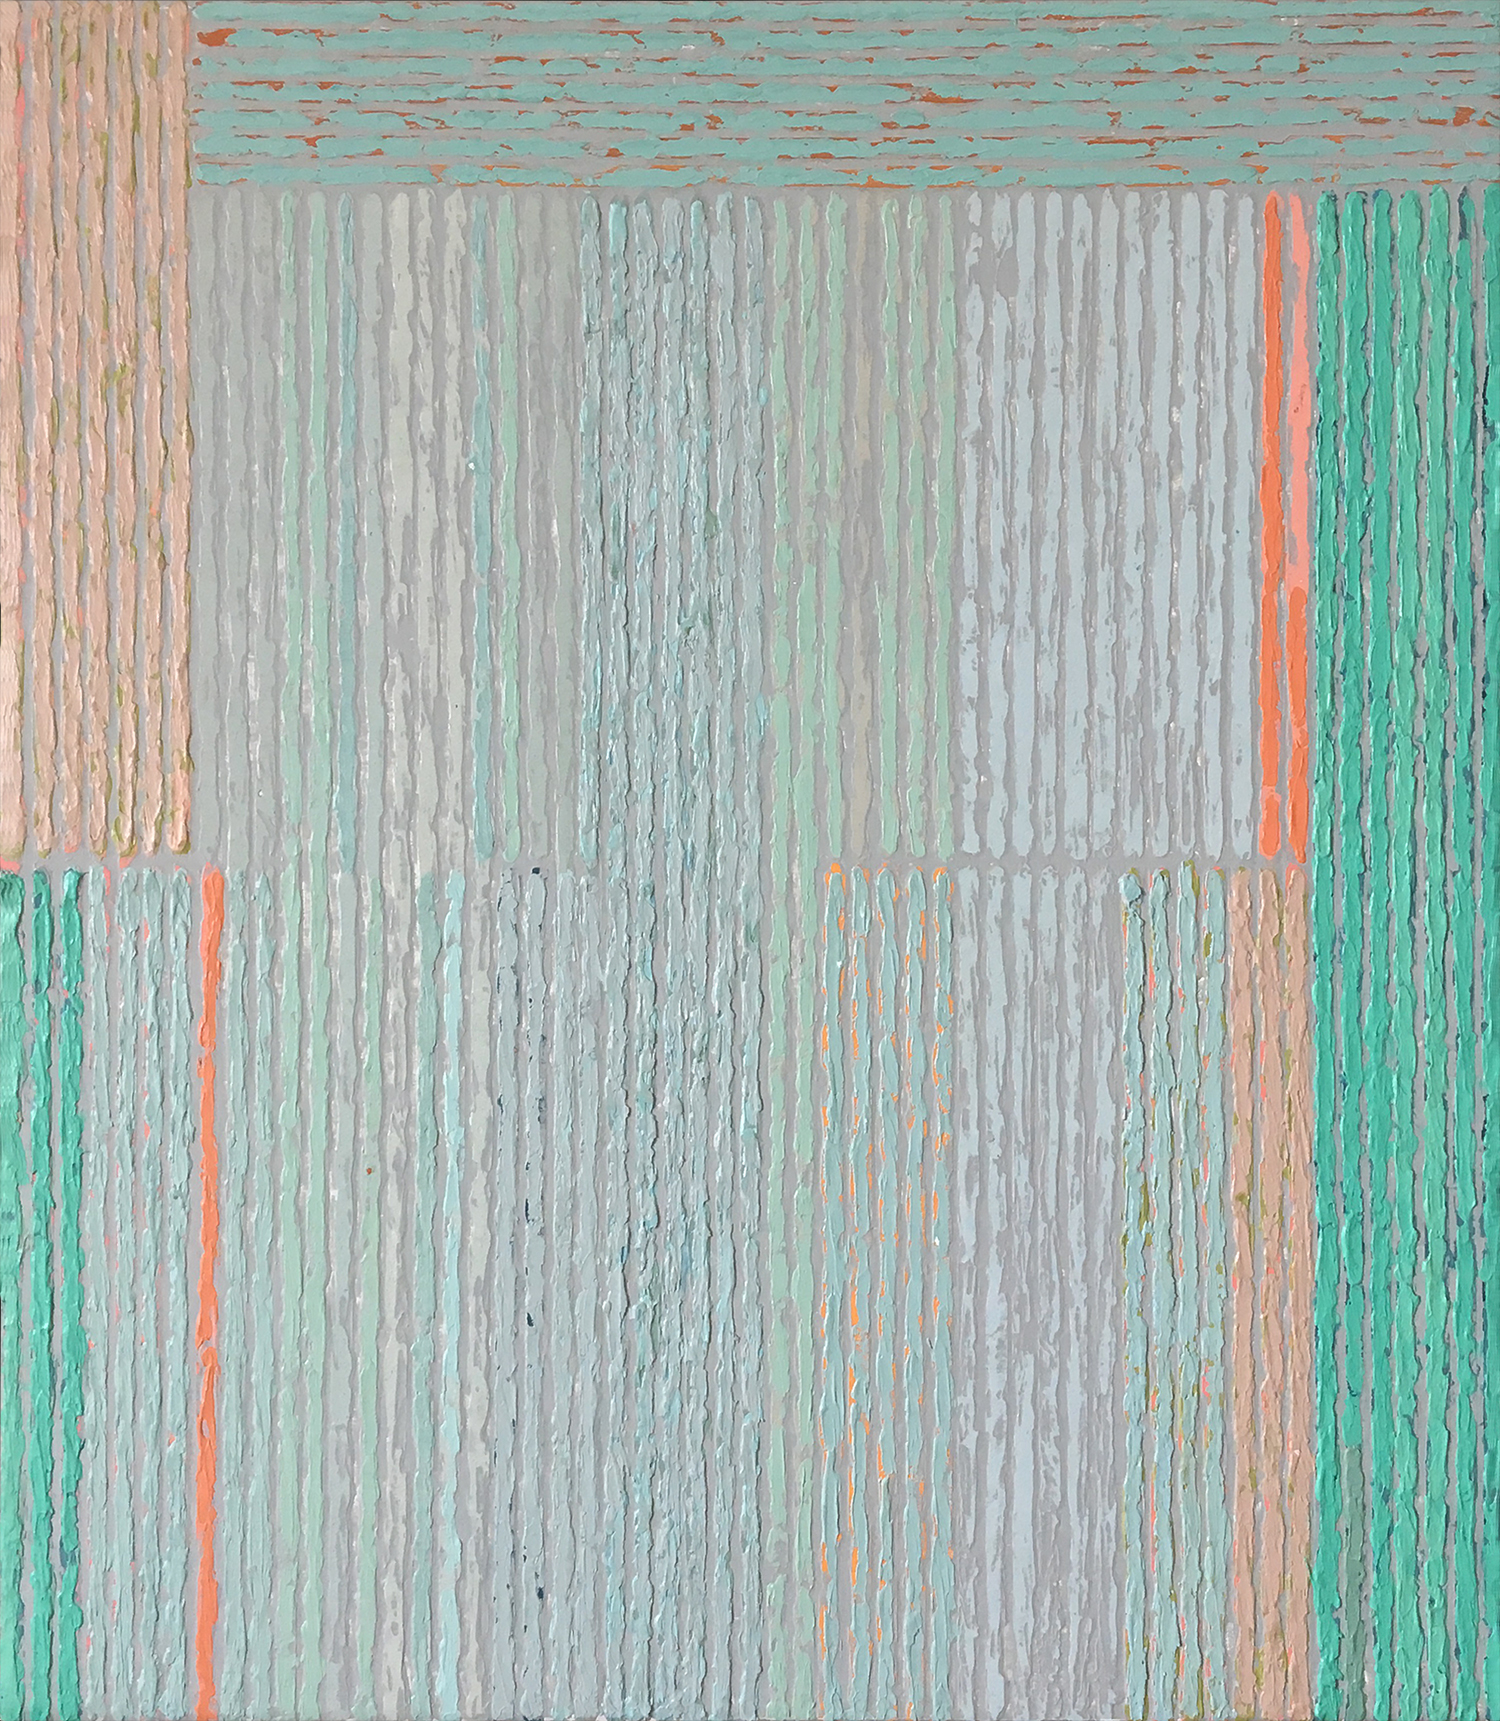 Intuition with Aqua Bars,  acrylic on panel, 16x14""